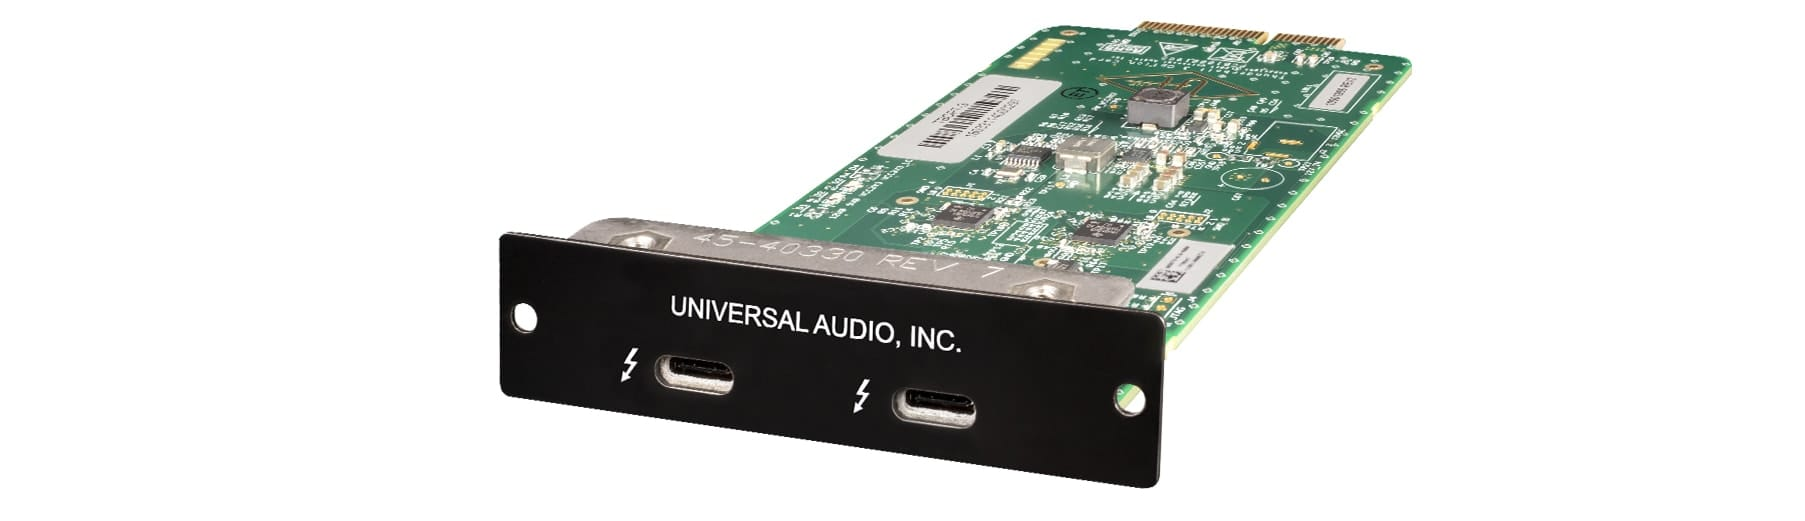 UNIVERSAL AUDIO TBOC-3 THUNDERBOLT 3 OPTION CARD (MAC/WIN)